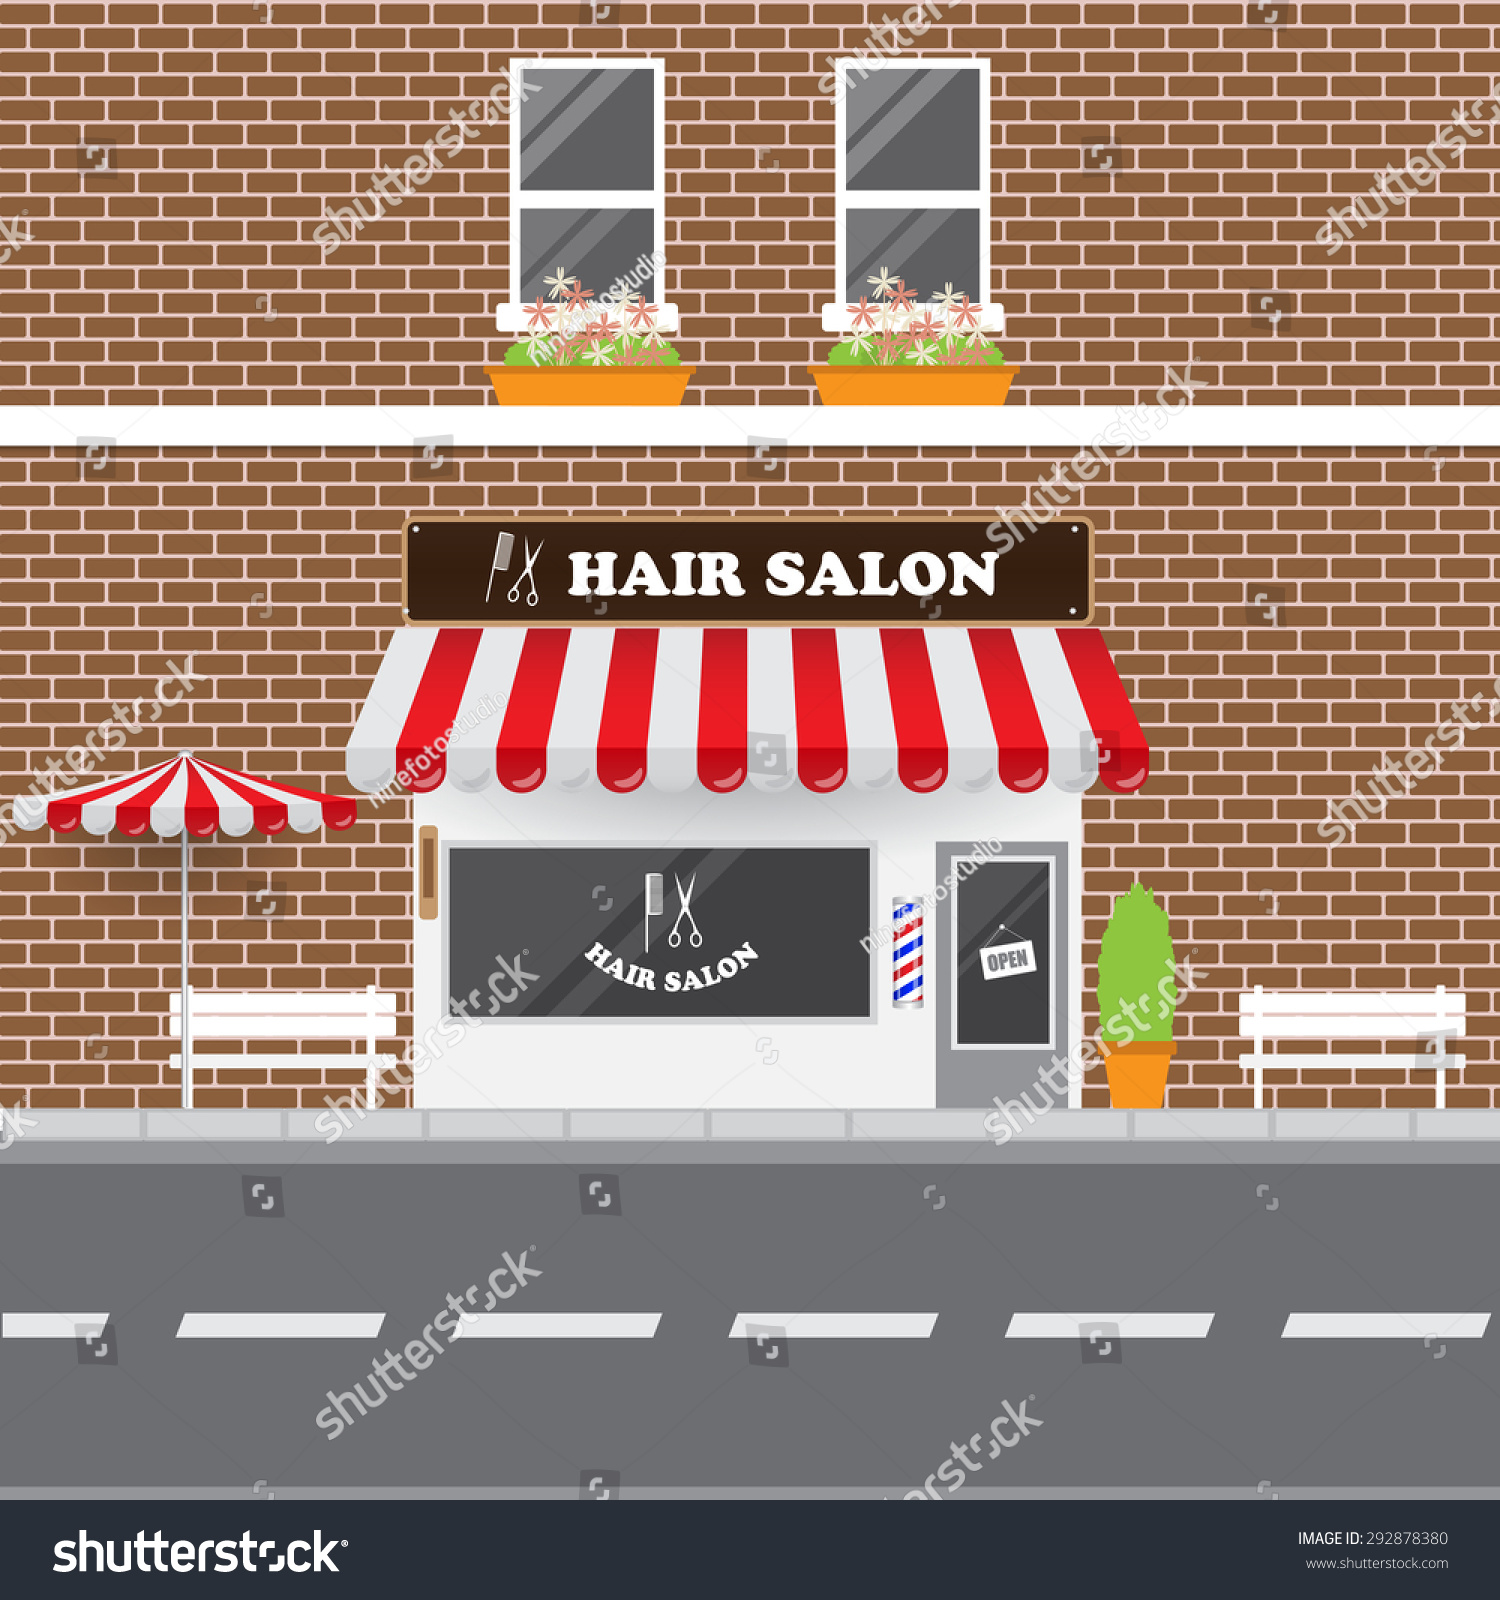 Hair salon chair isolated stock photos illustrations and vector art - Hair Salon With Street Landscape Brick Building Retro Style Facade Vector Illustration